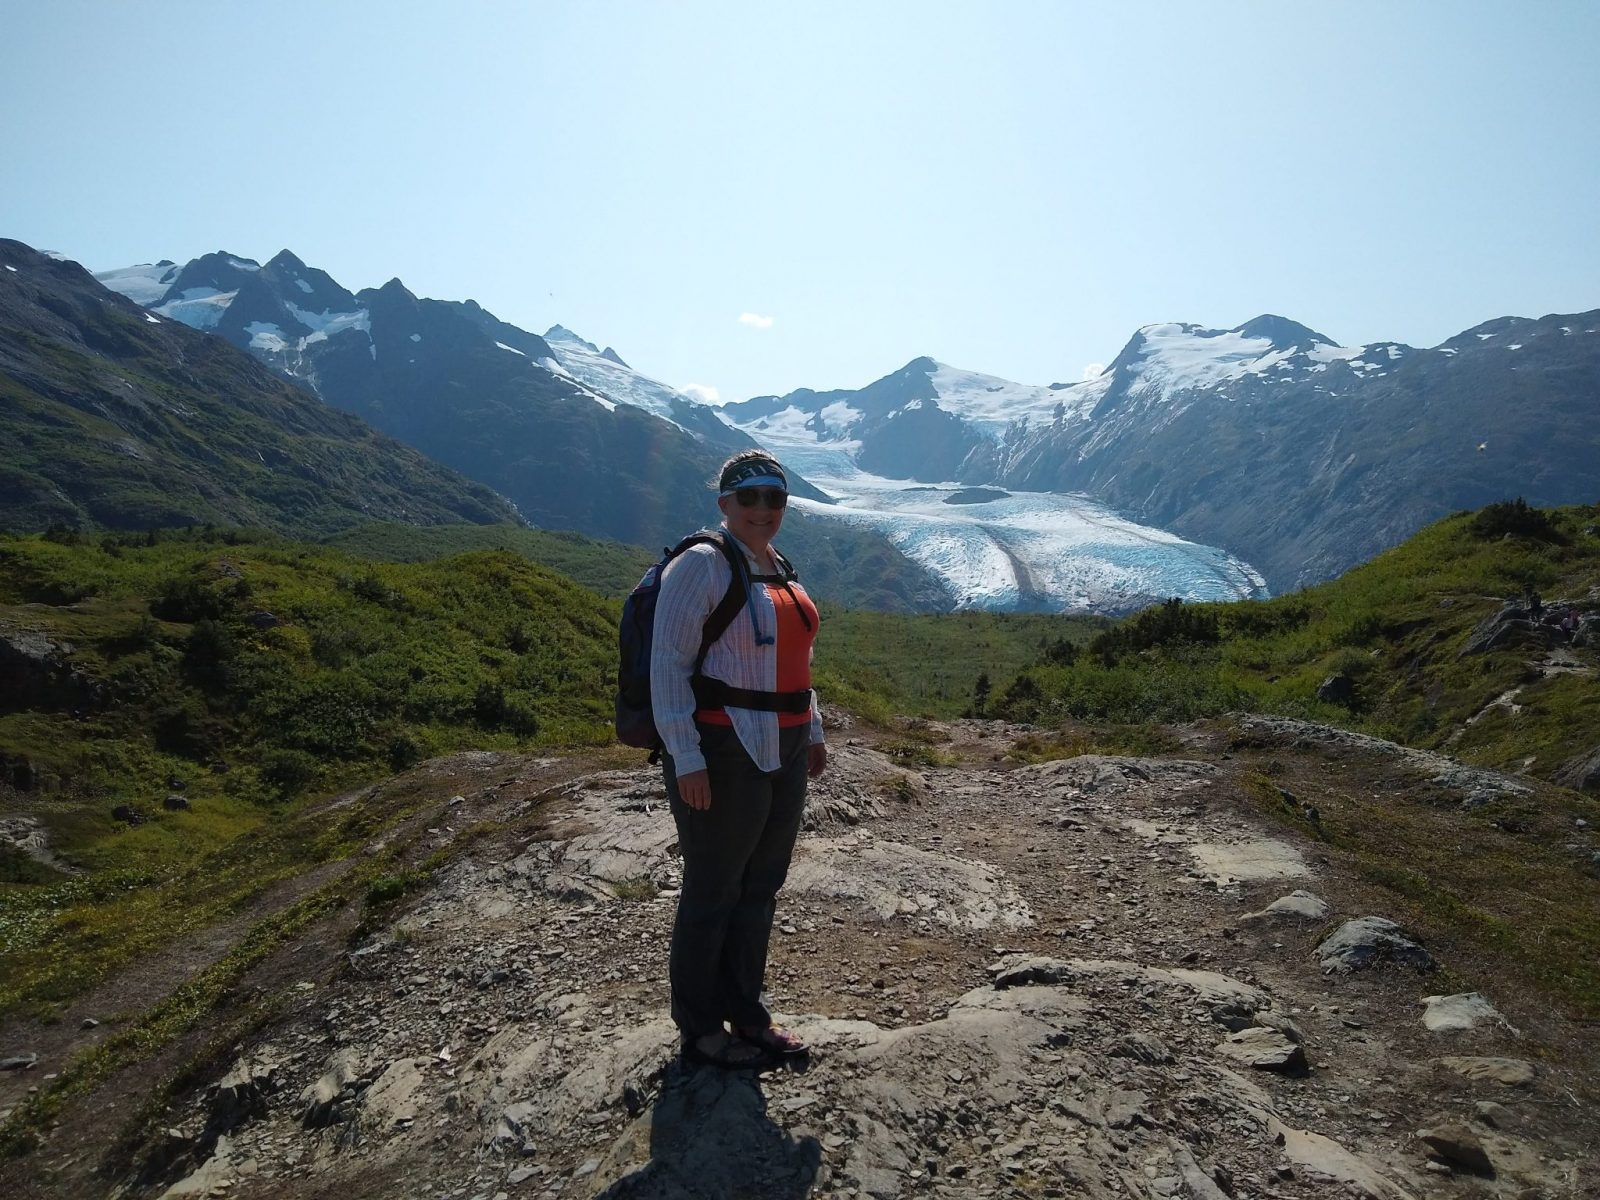 A woman on a rocky trail in a meadow with mountains and a glacier in the background wearing hiking pants, a tank top, a long sleeve shirt, a backpack and sunglasses